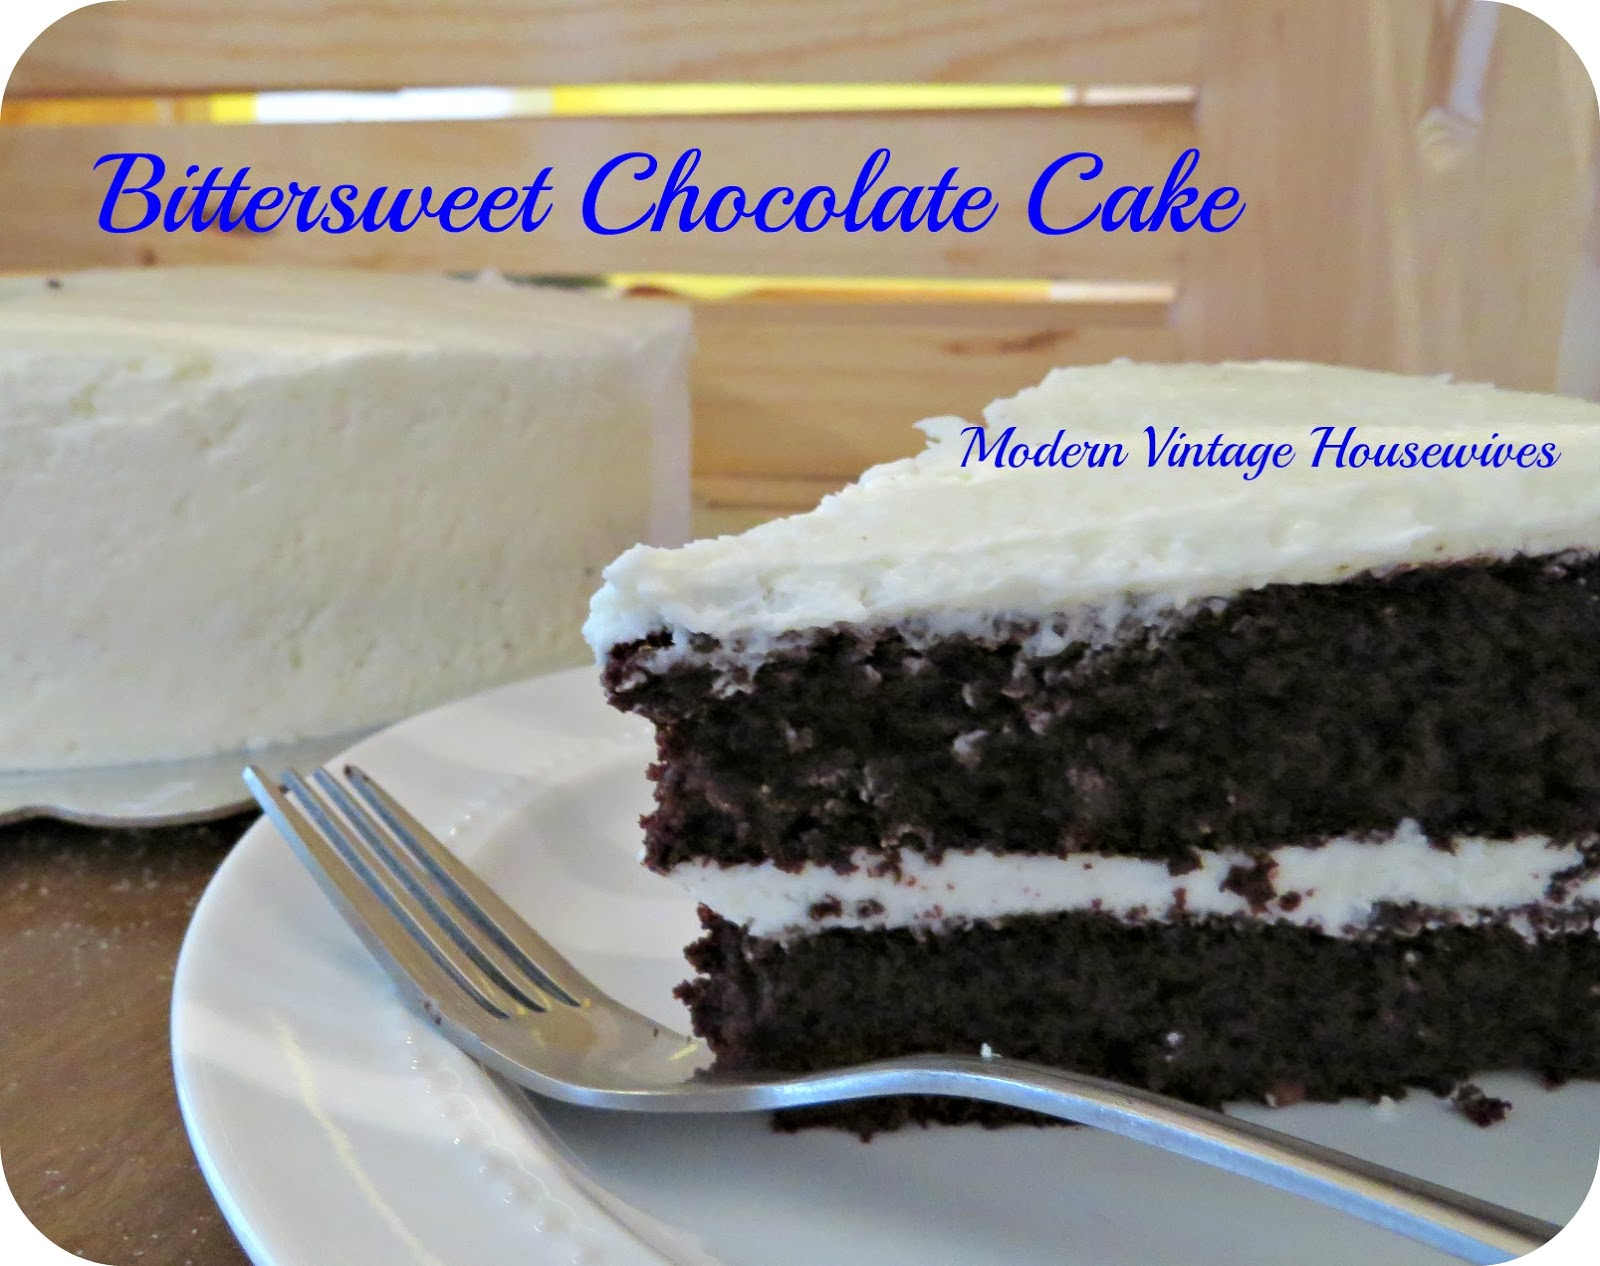 Modern Vintage Housewives: Bittersweet Chocolate Cake